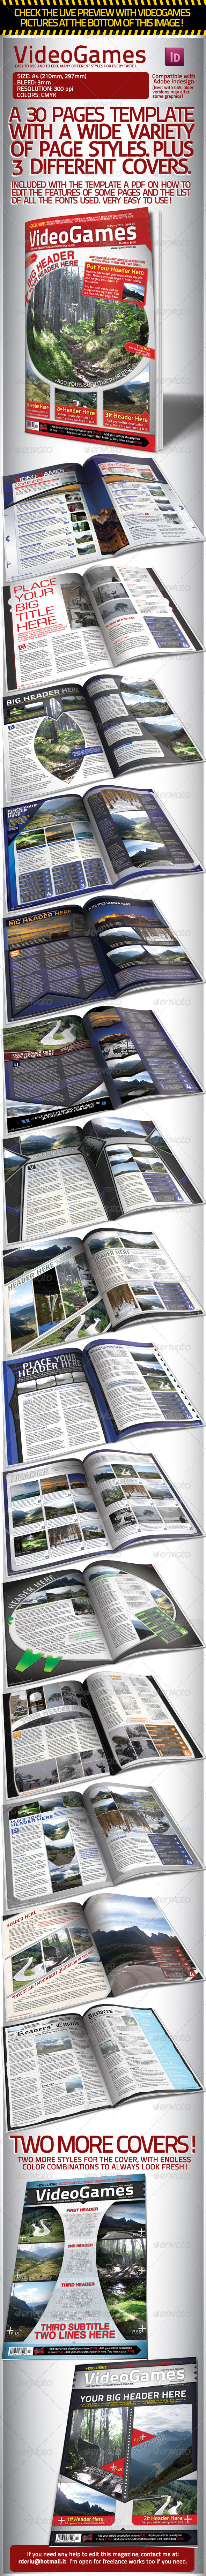 GraphicRiver Videogames Magazine Template with 3 Covers 1528979